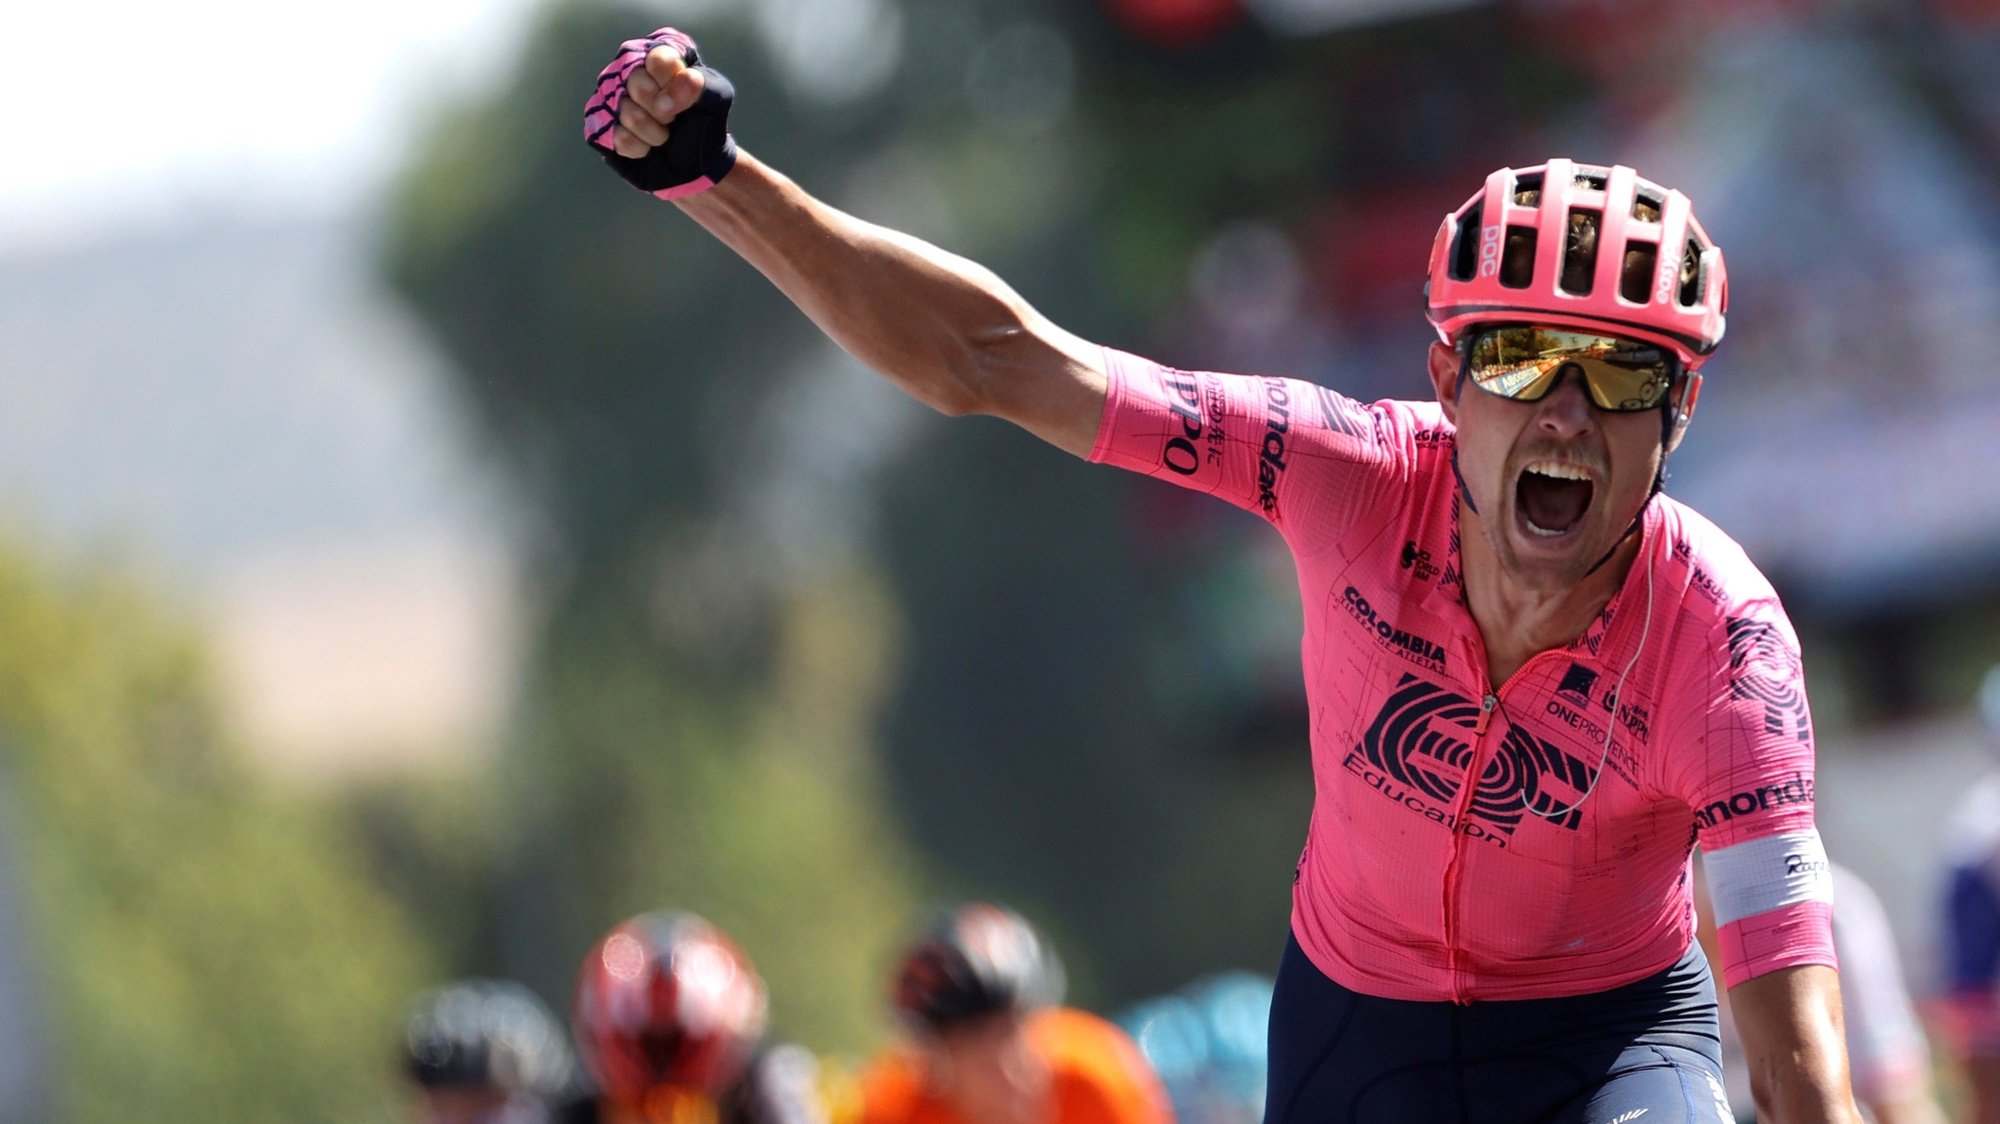 epaselect epa09430583 Danish rider Magnus Cort Nielsen of EF Education team celebrates winning the 12th stage of the Spanish Cycling Vuelta in Jaen, a 175km-long race between Jaen and Cordoba, Spain, 26 August 2021.  EPA/Manuel Bruque